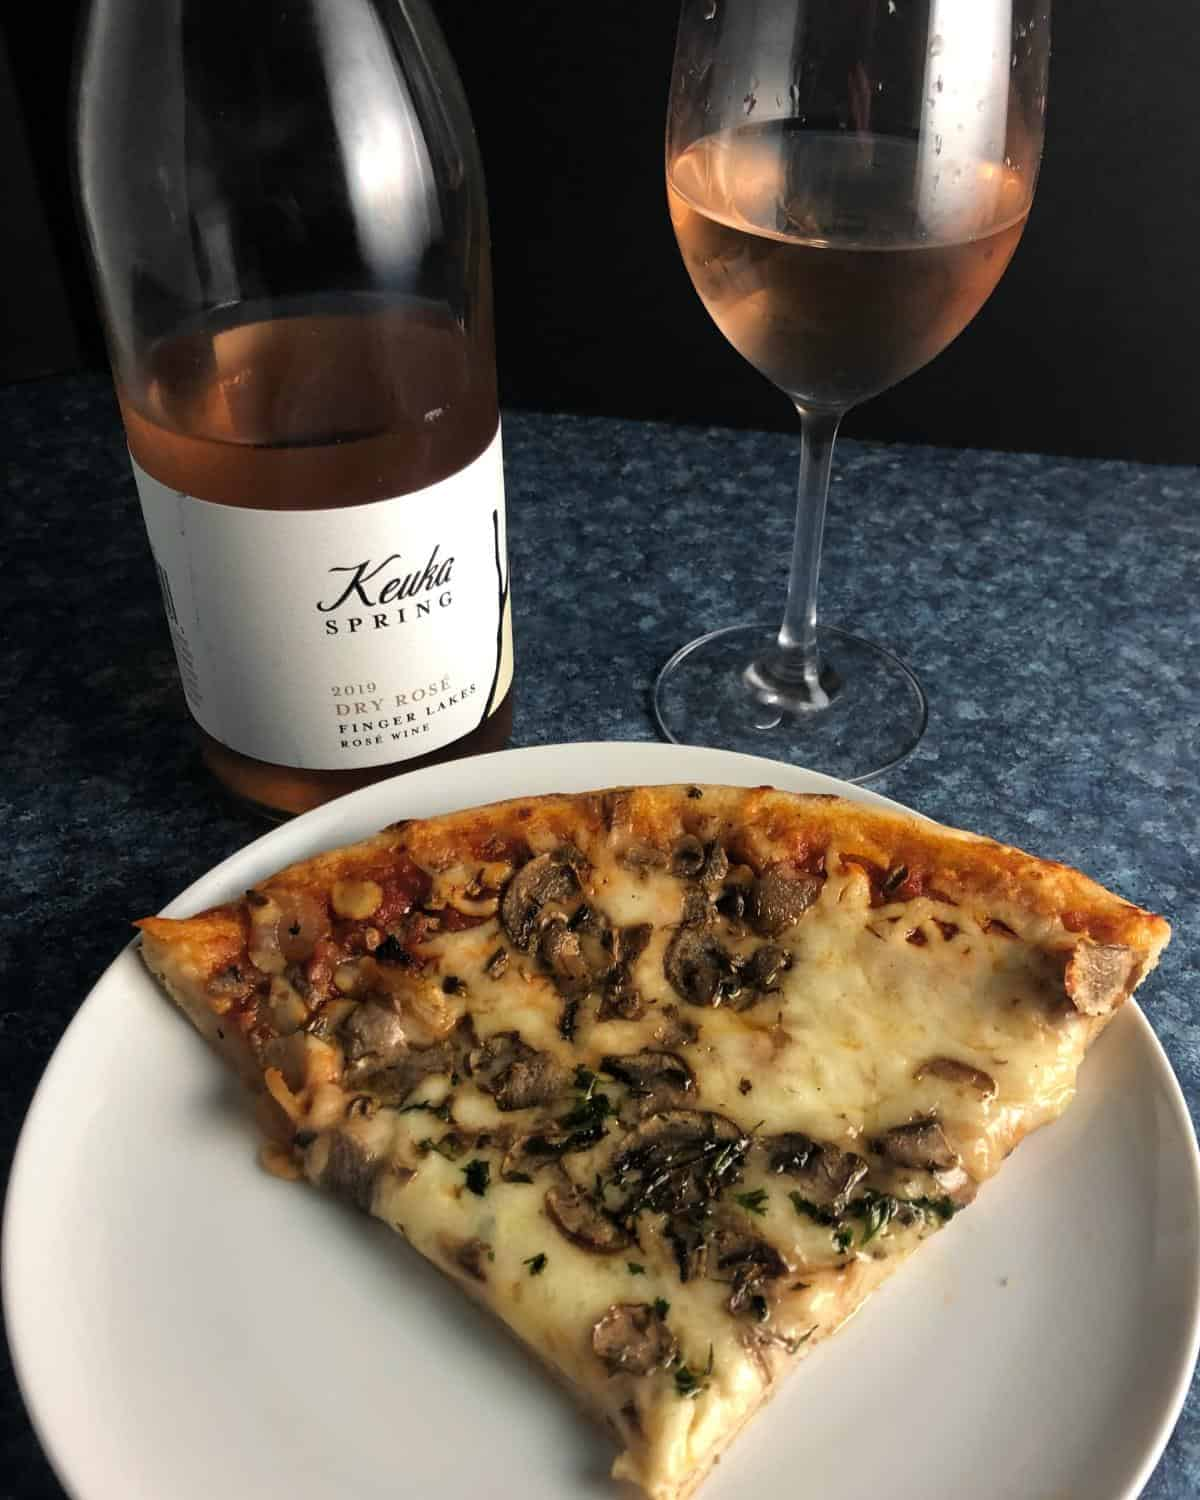 Keuka Springs rose with pizza